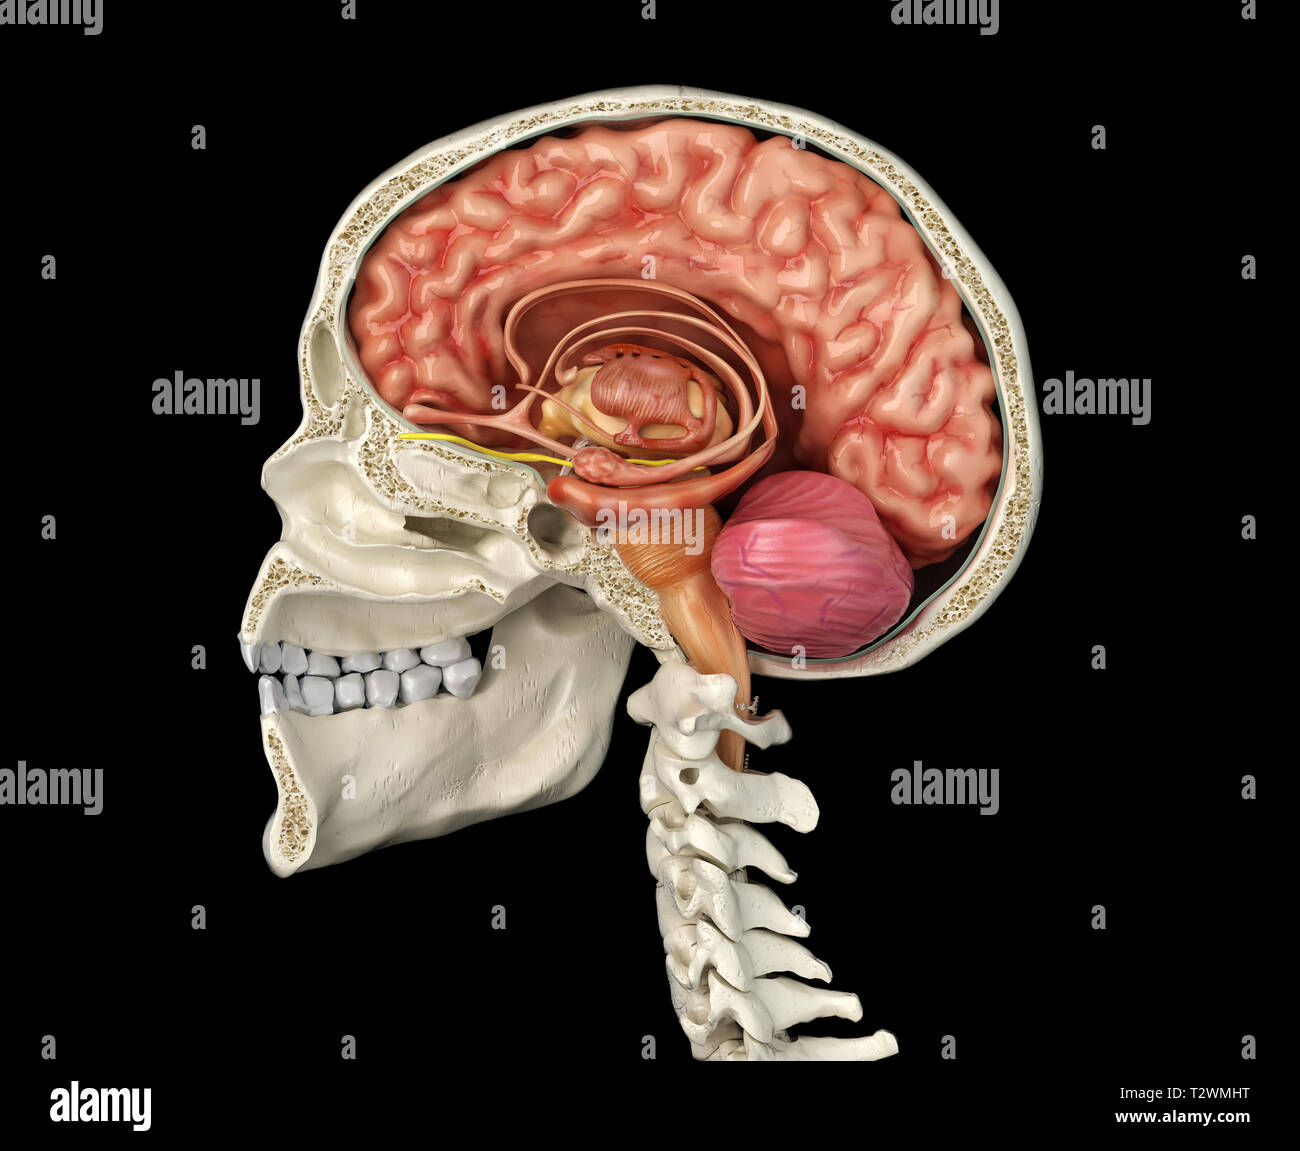 Human skull mid sagittal cross-section with brain. Side view on black background. - Stock Image